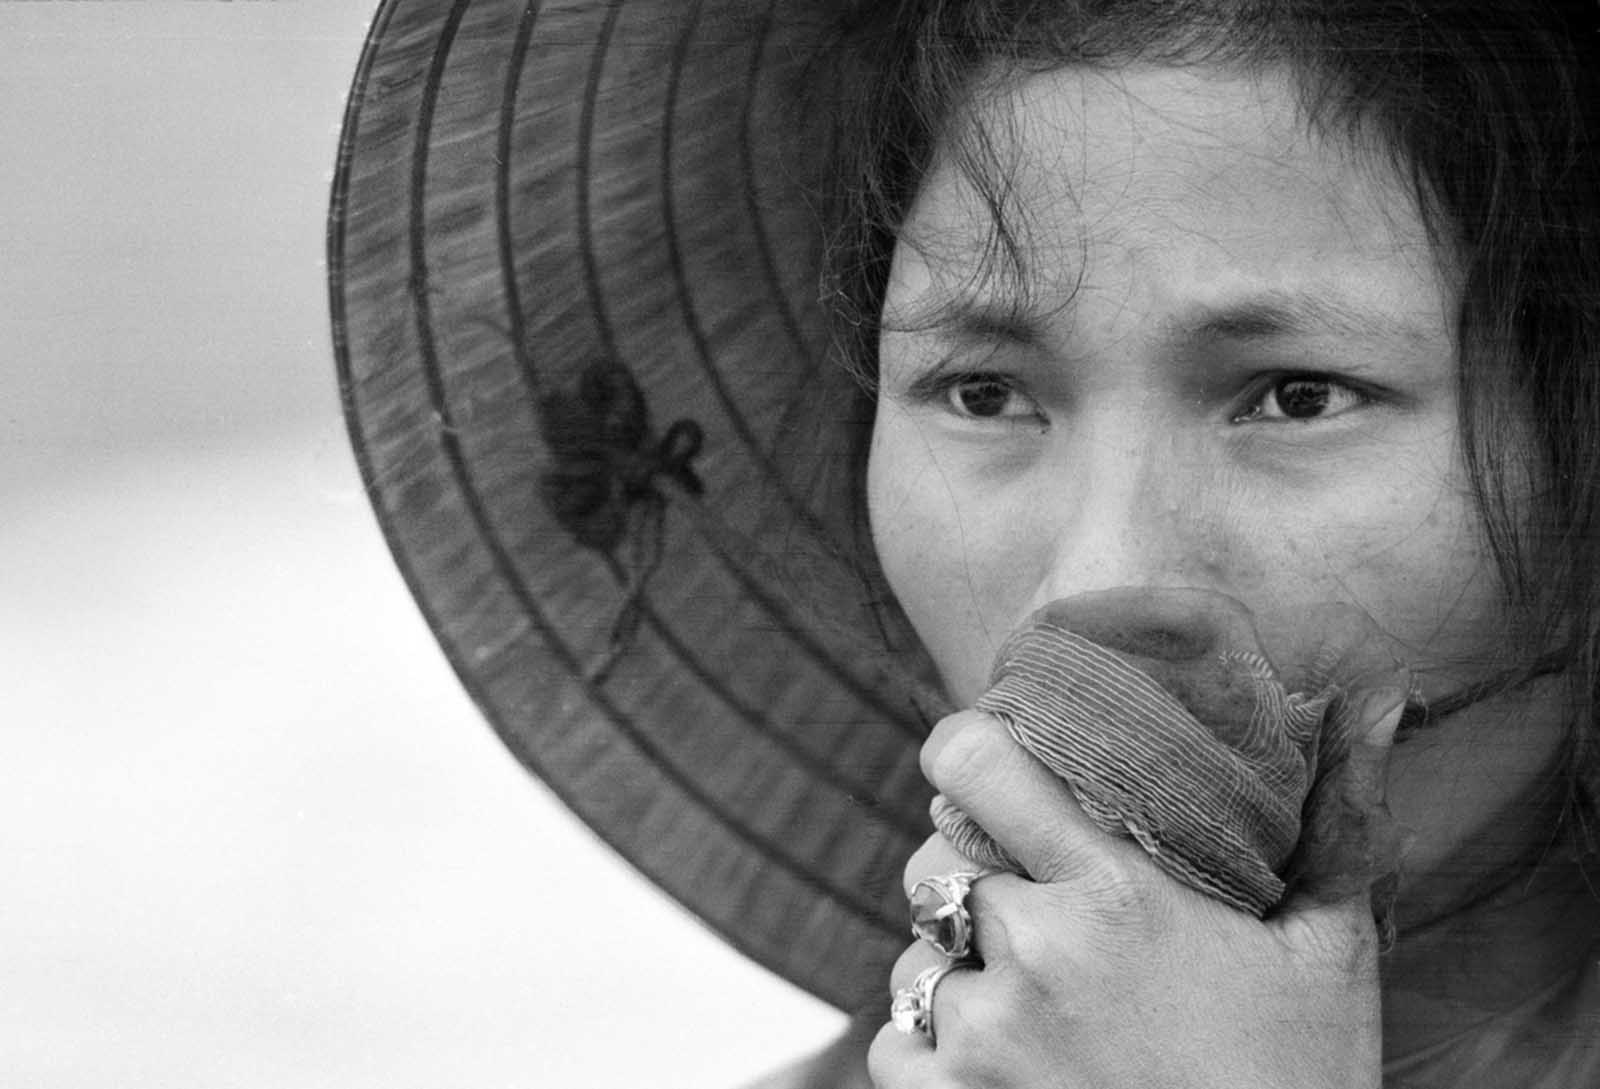 A young south vietnamese woman covers her mouth as she stares into a mass grave where victims of a reported viet cong massacre were being exhumed near dien